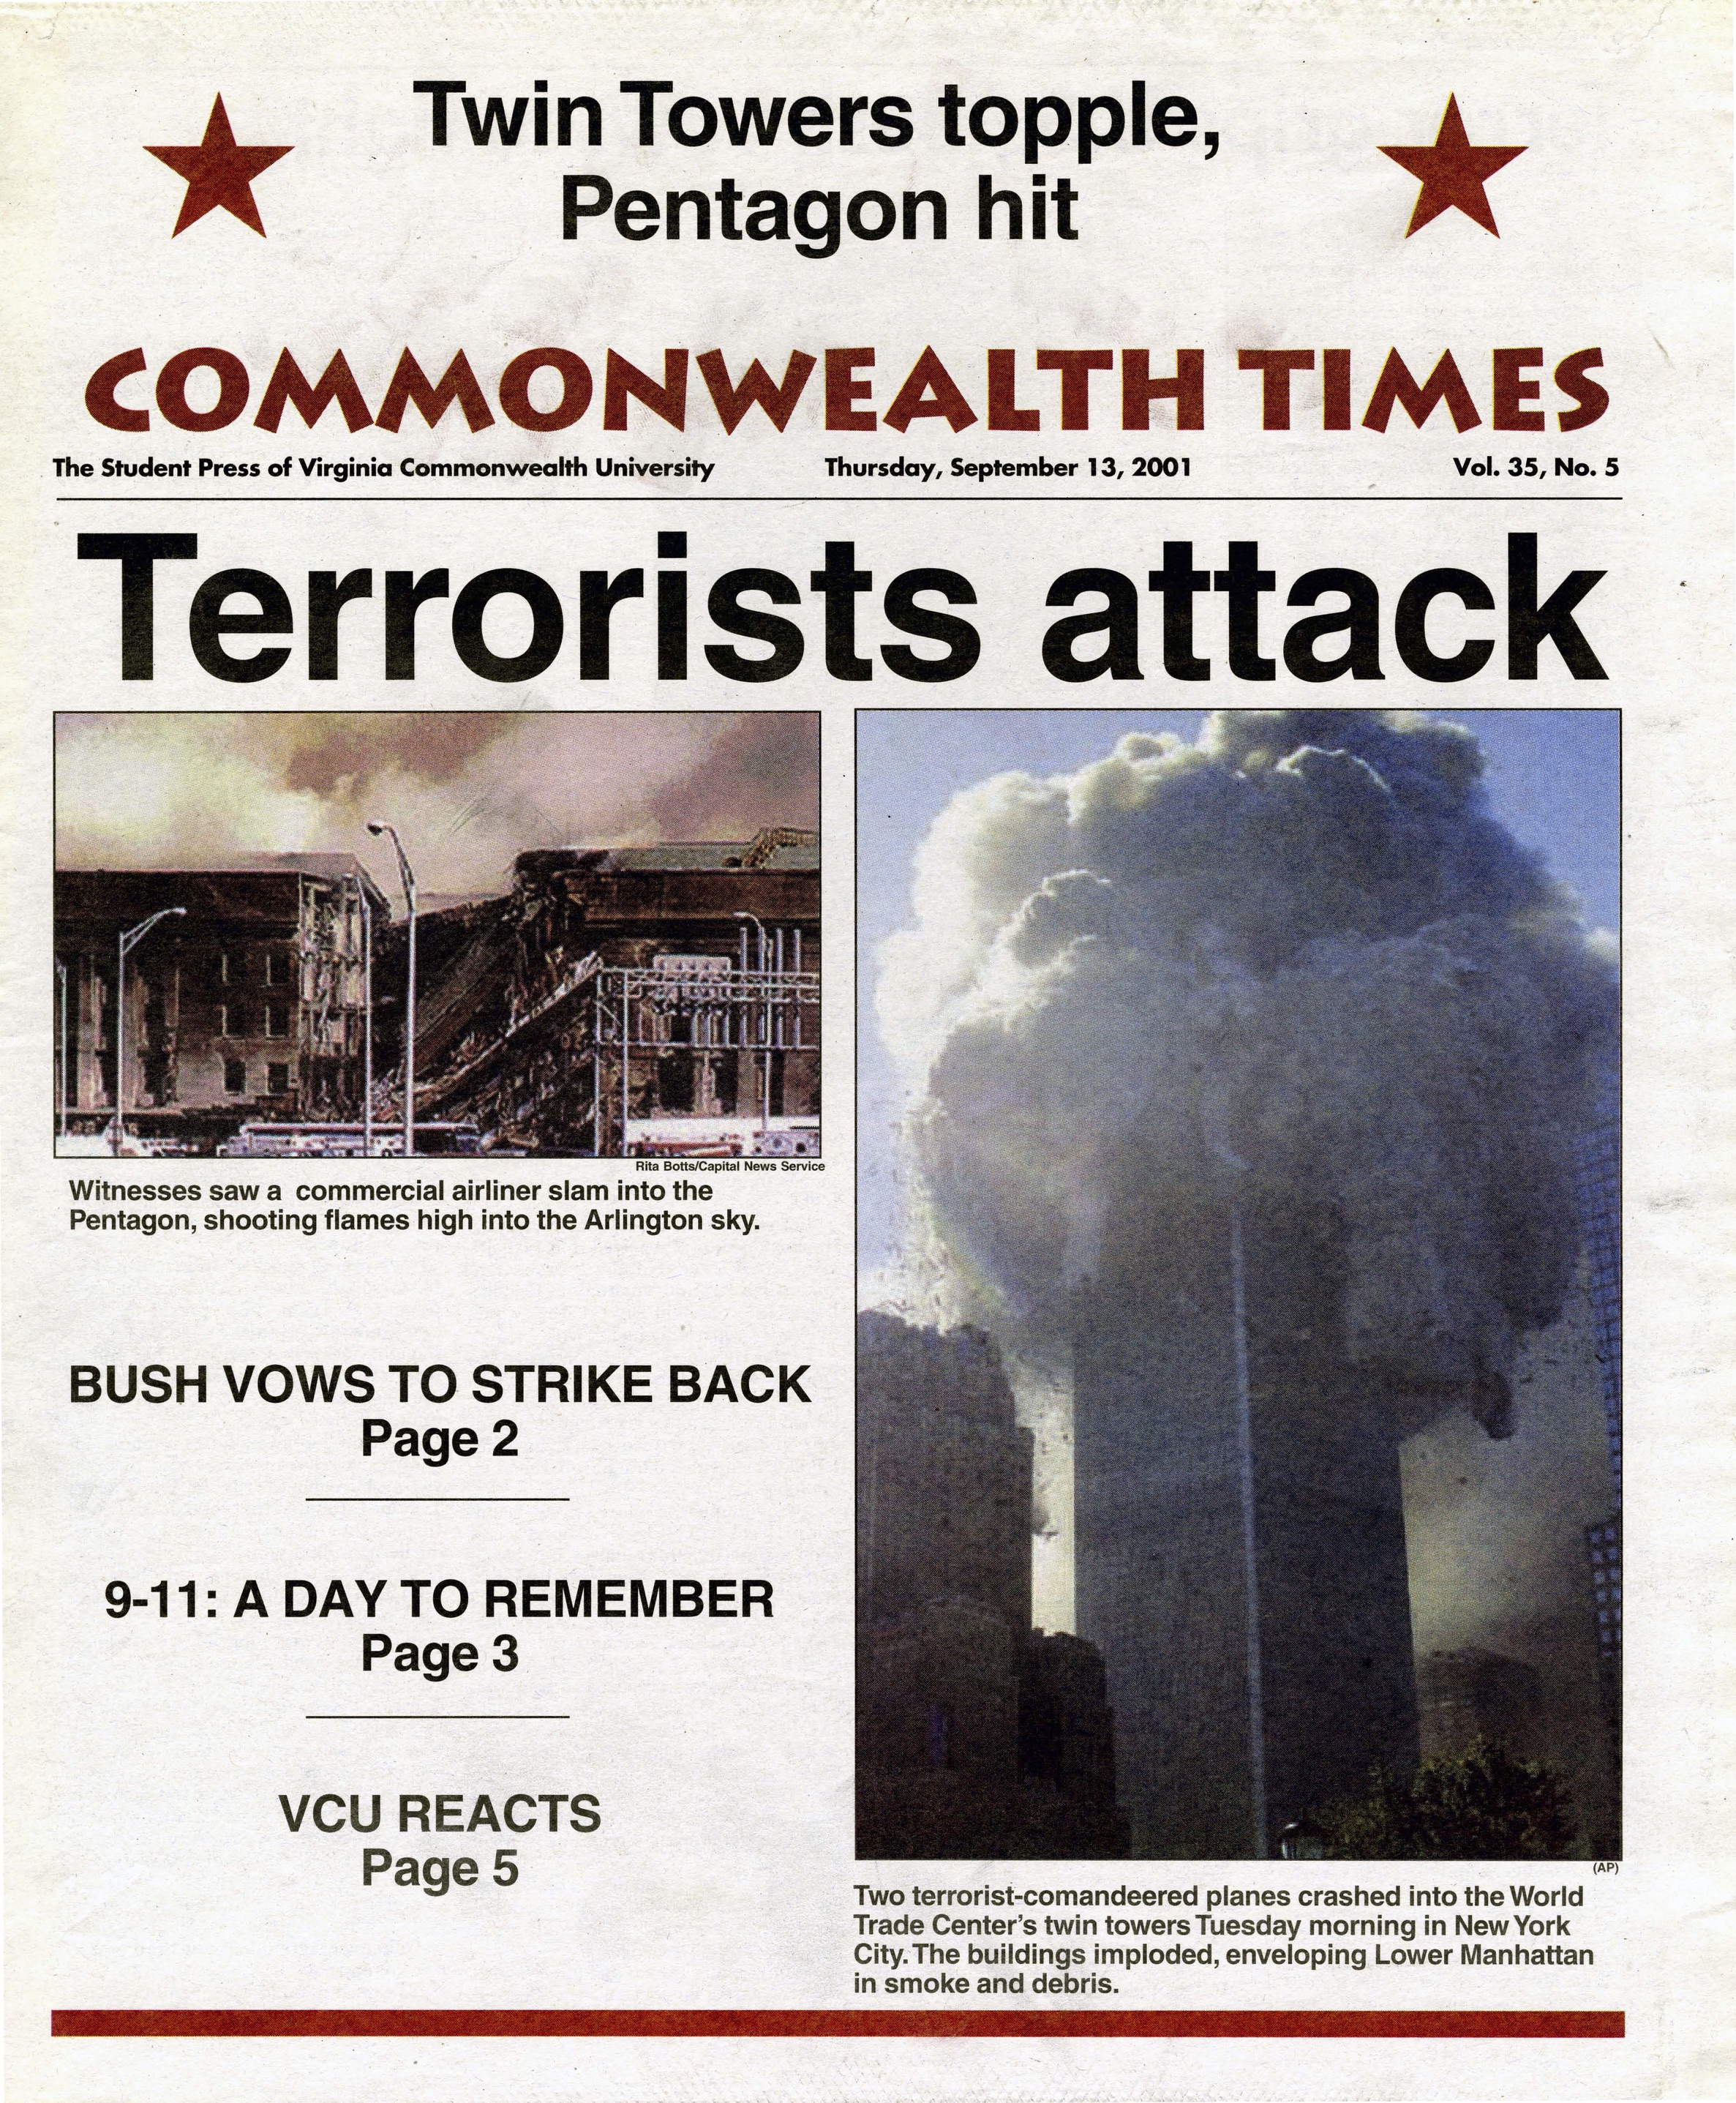 The Commonwealth Times. Sept. 13, 2001. og:image